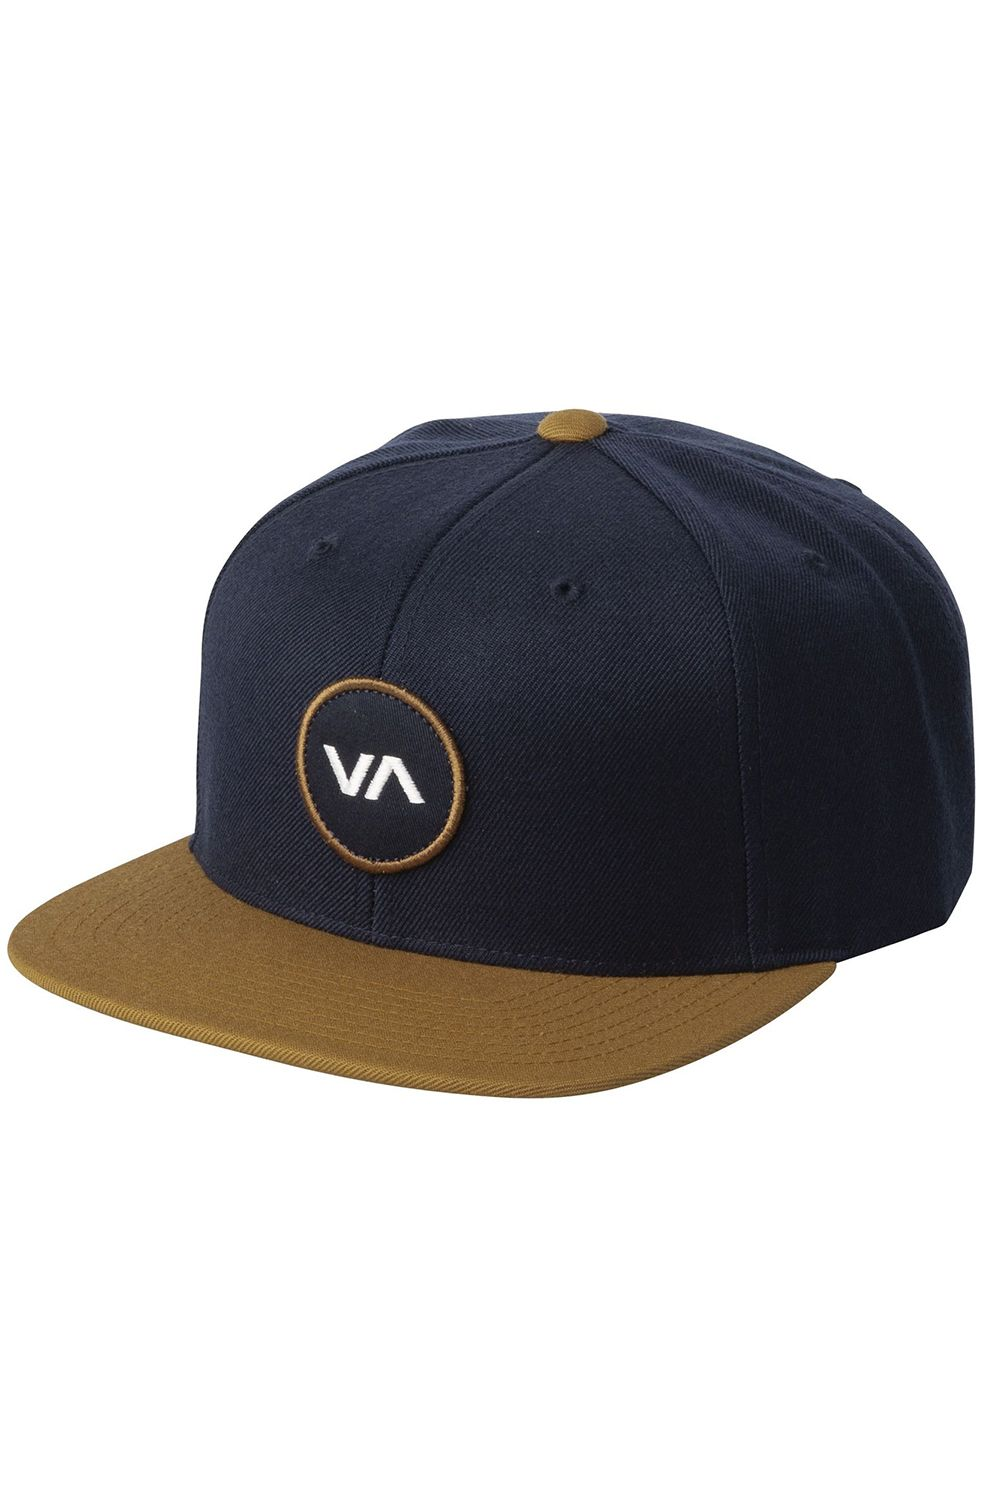 Bone RVCA VA PATCH SNAPBACK Navy/Khaki